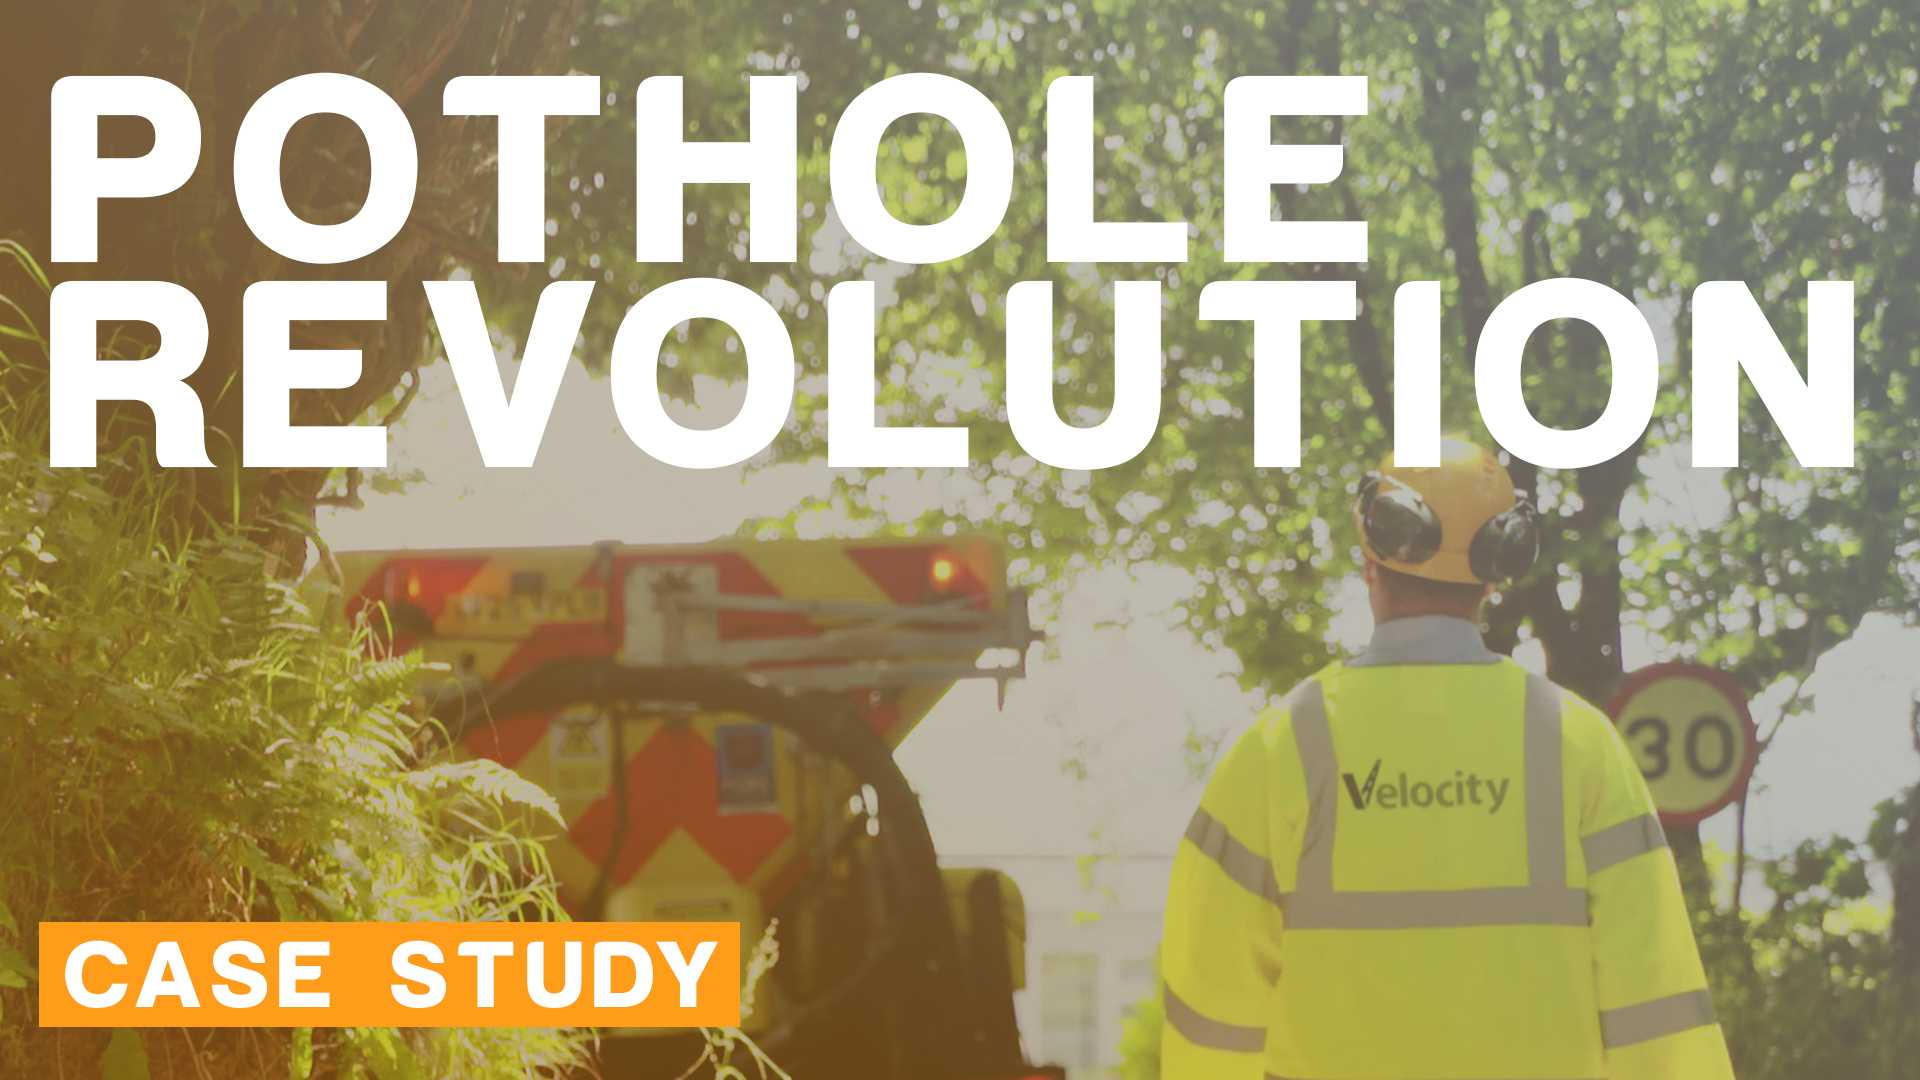 Velocity: A Revolution in Pothole Repairs